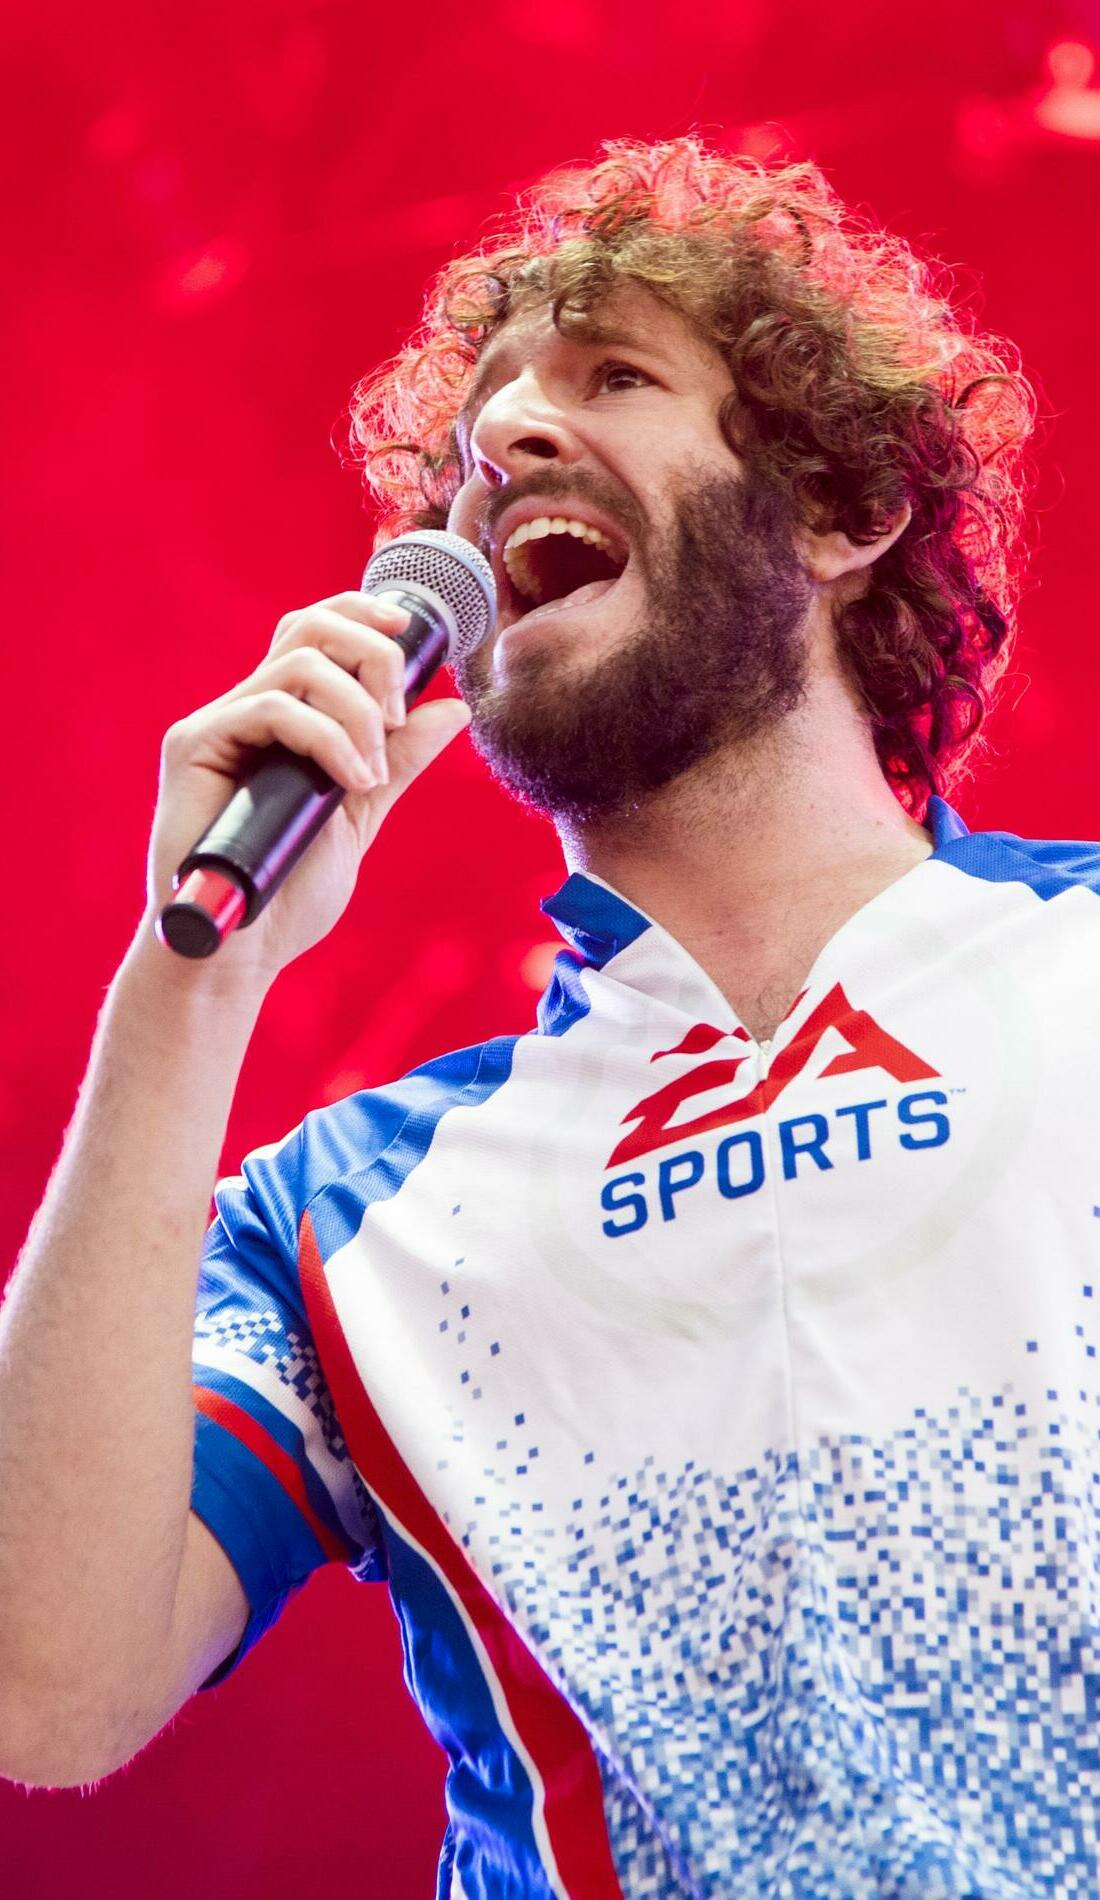 A Lil Dicky live event